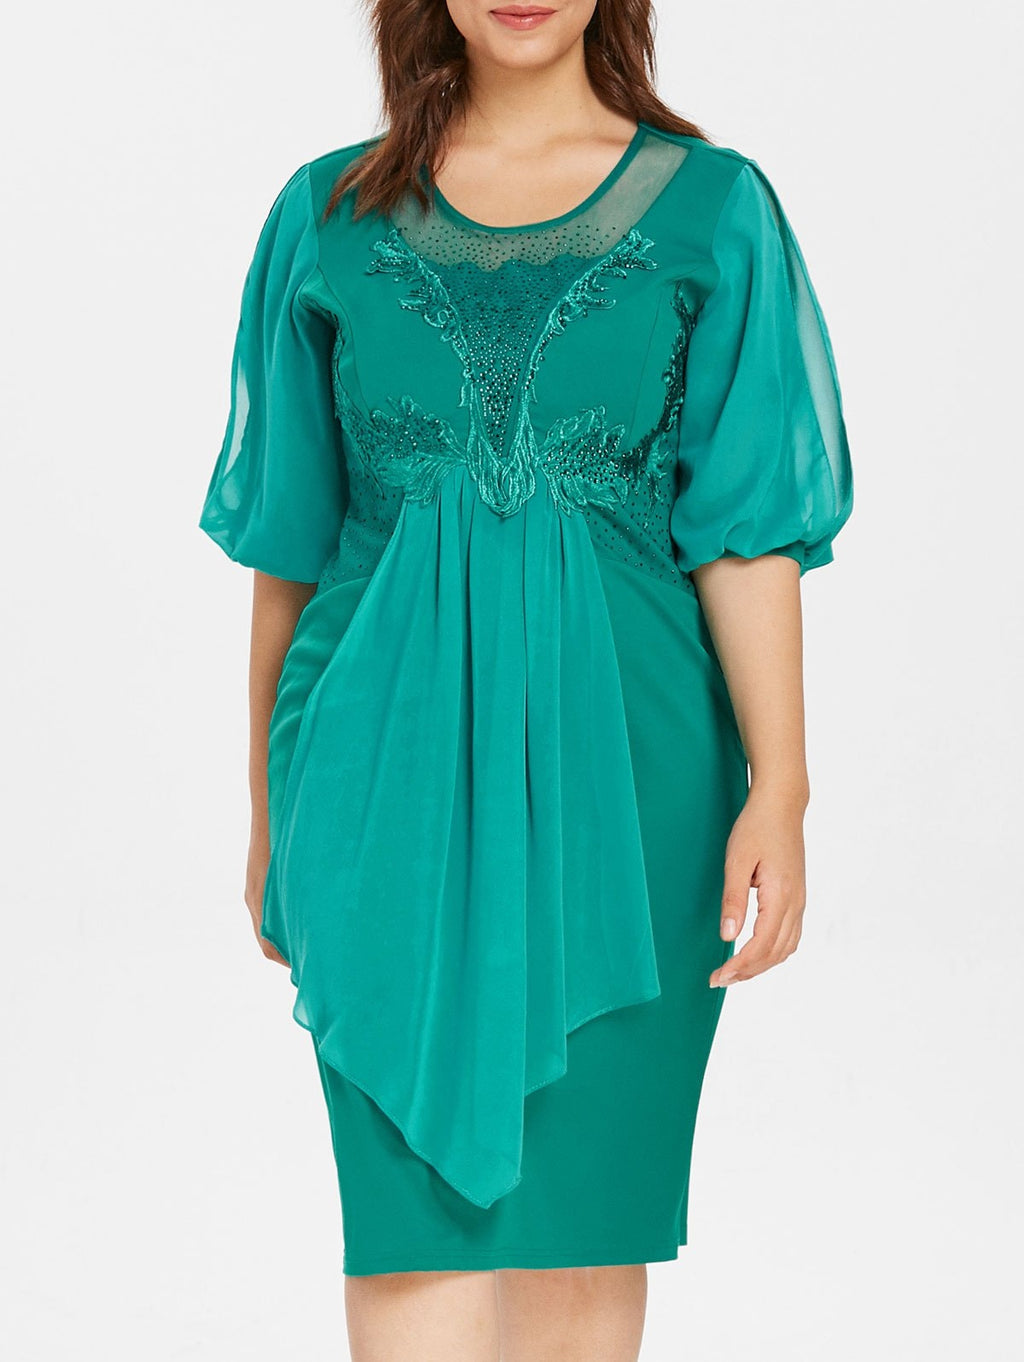 Rhinestone Embellished Plus Size Embroidery Dress